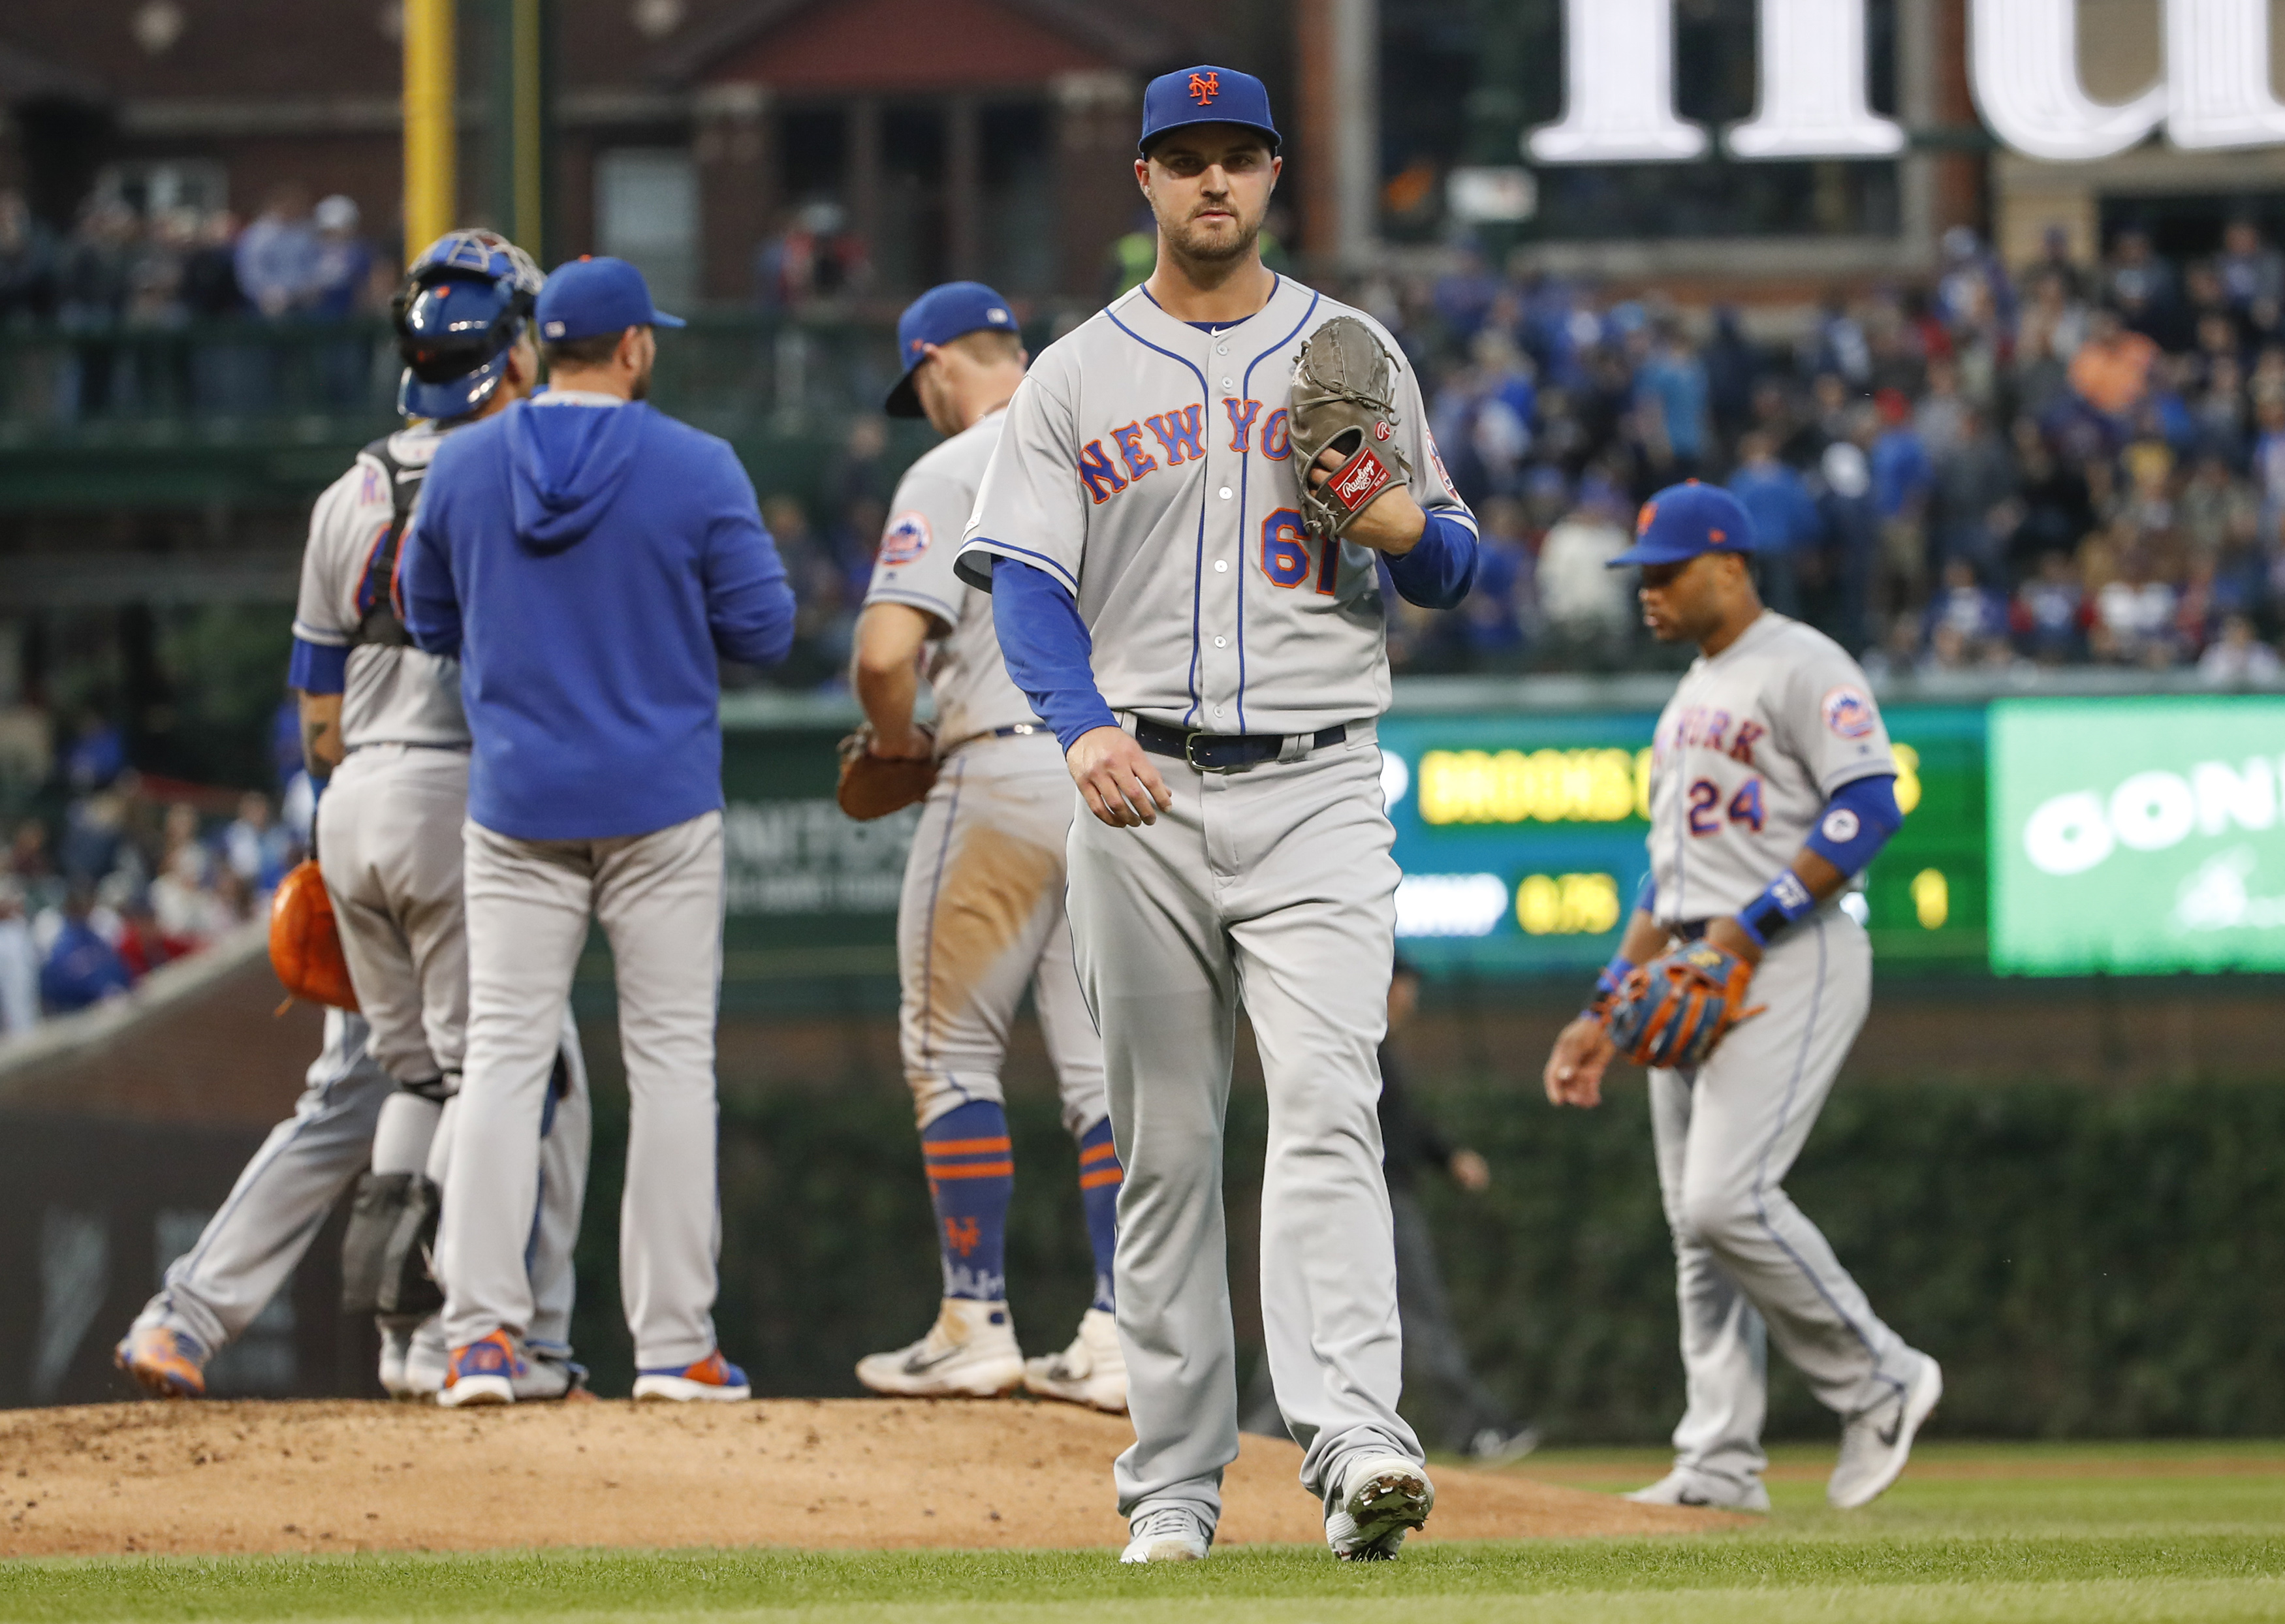 Walker Lockett gets shelled as New York Mets fall 7-4 to Chicago Cubs